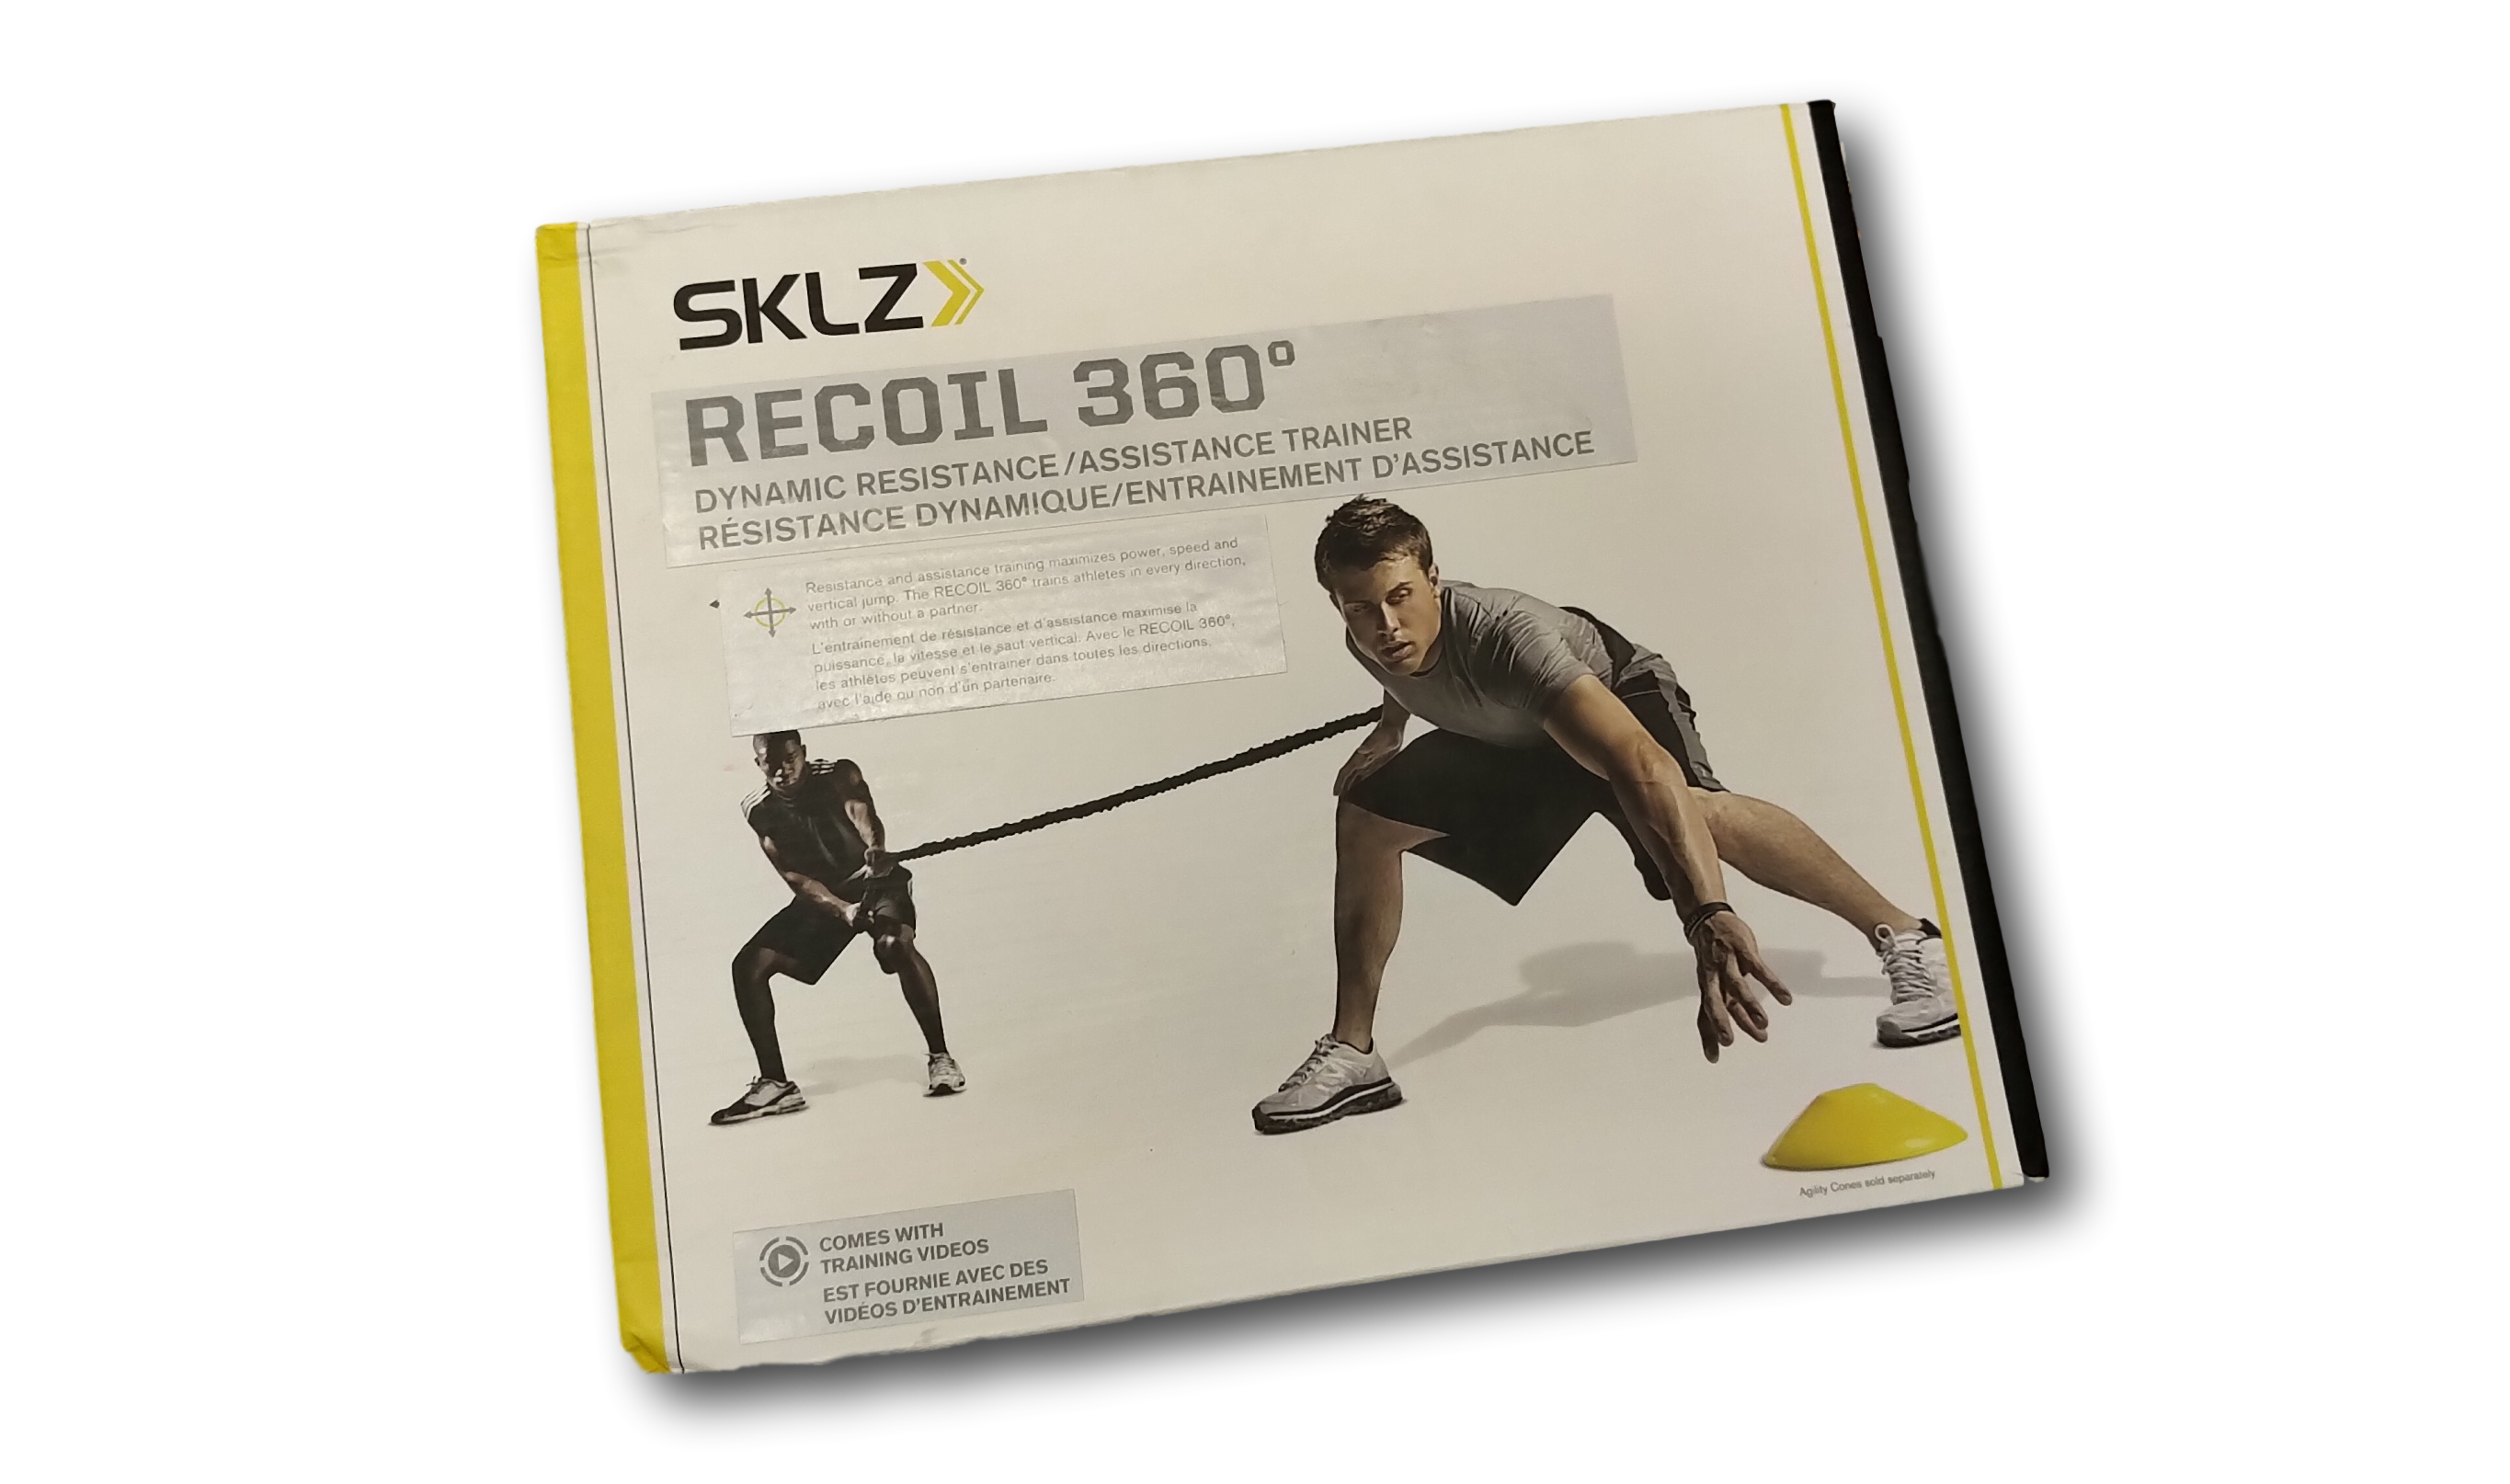 sklz recoil product box image